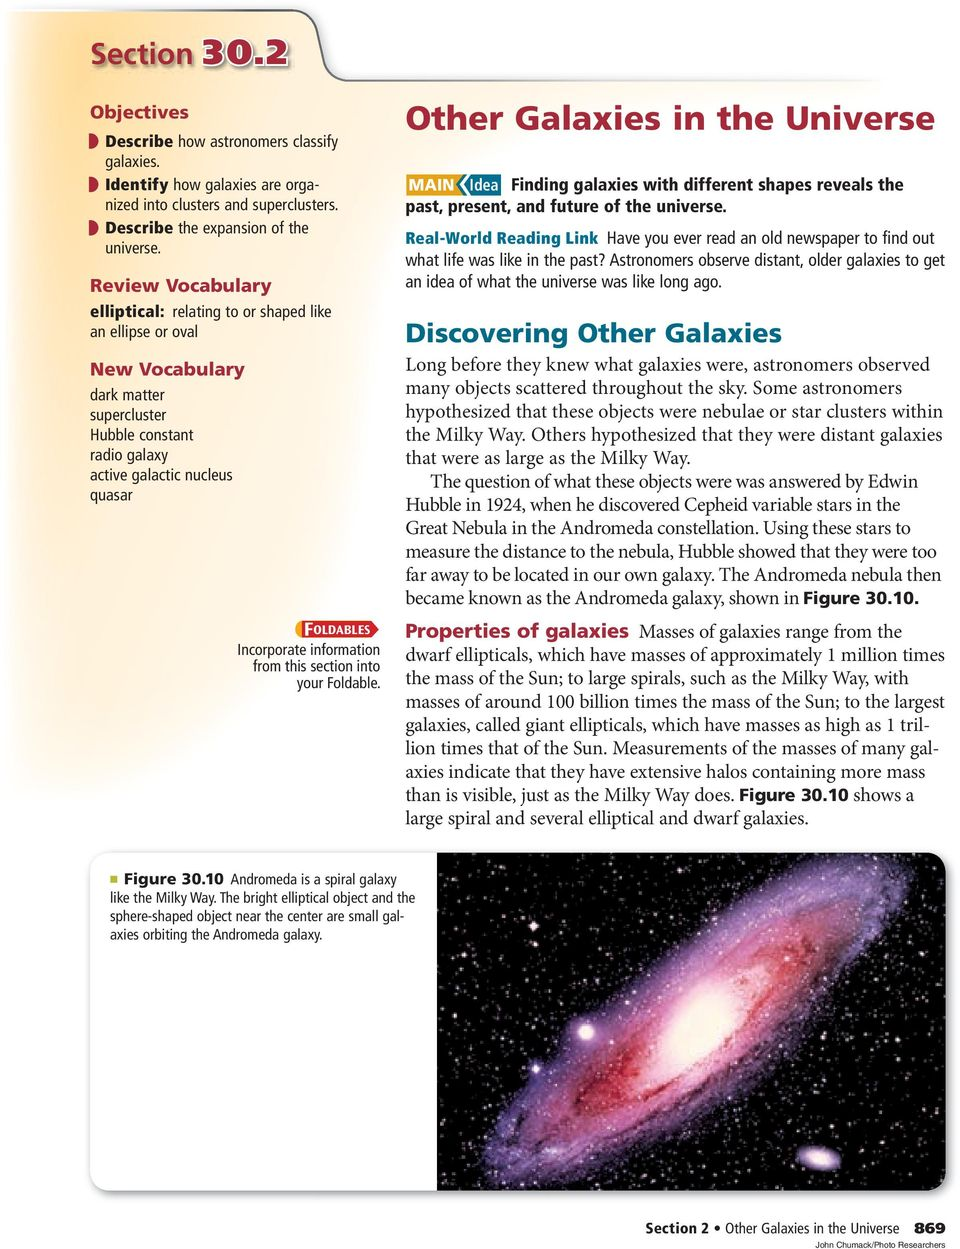 information from this section into your Foldable. Other Galaxies in the Universe MAIN Idea Finding galaxies with different shapes reveals the past, present, and future of the universe.